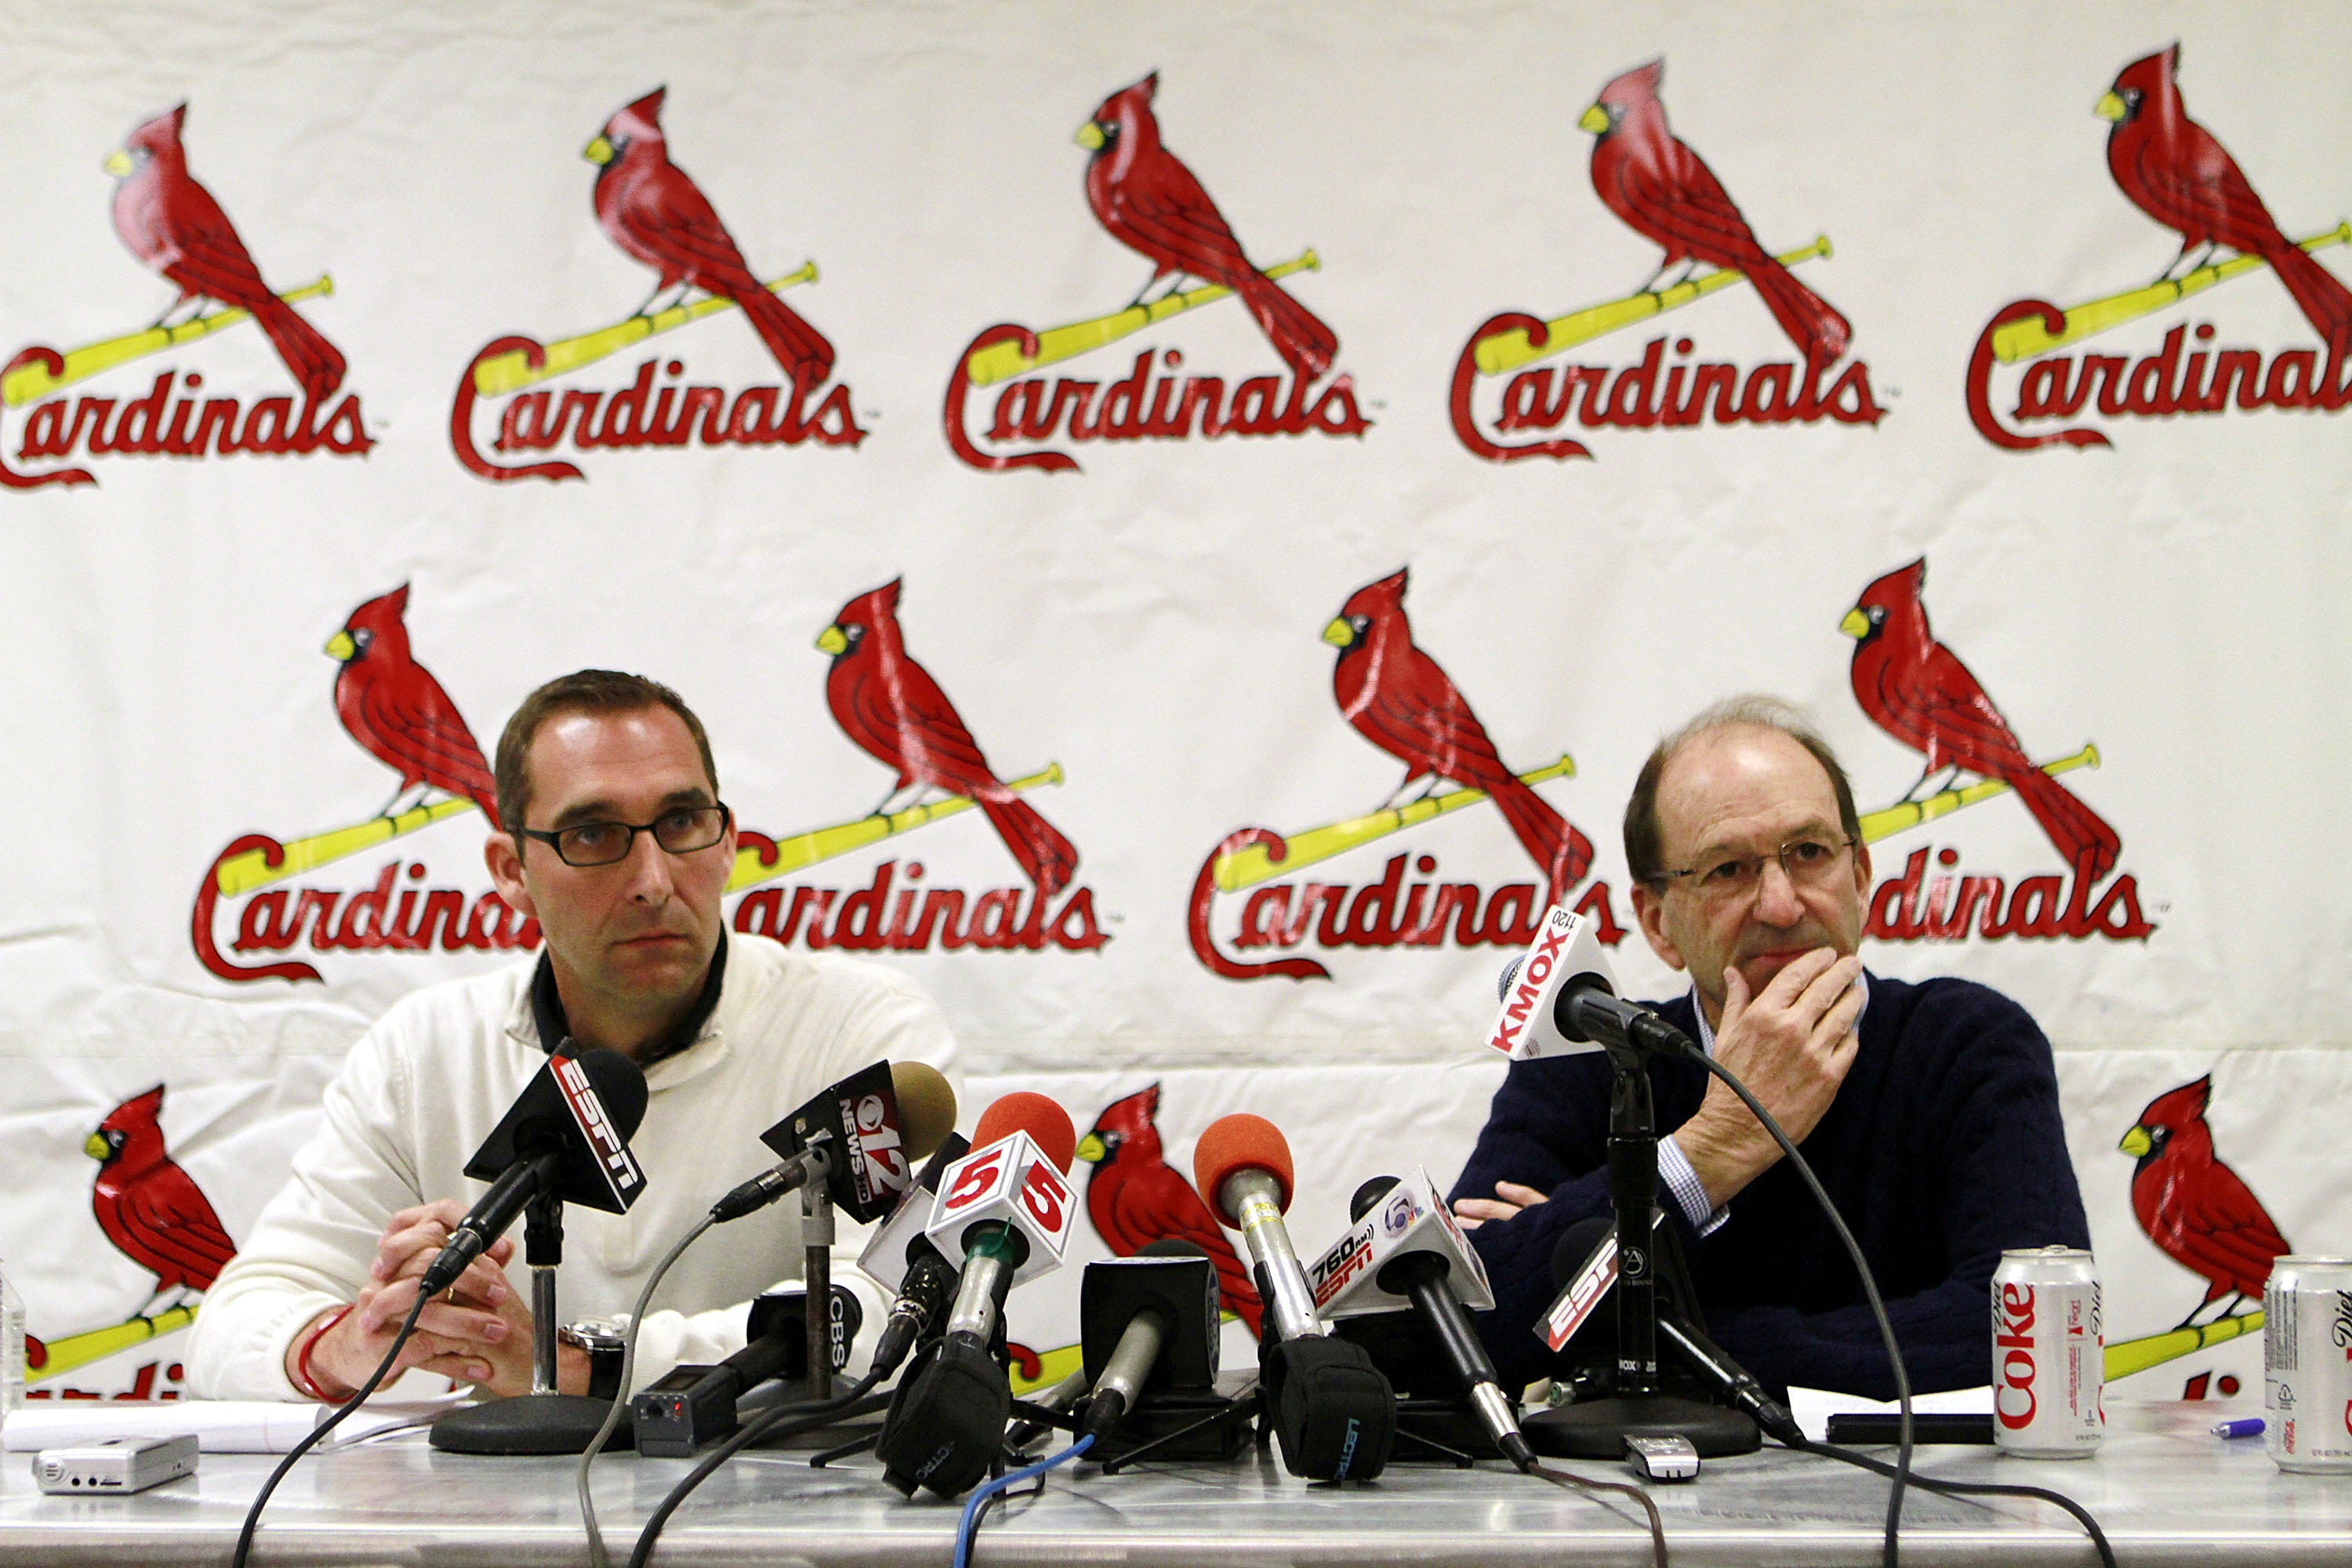 JUPITER, FL - FEBRUARY 16:  General Manager John Mozeliak (L) and owner William DeWitt, Jr. of the St. Louis Cardinals speak at a press conference at Roger Dean Stadium on February 16, 2011 in Jupiter, Florida.  (Photo by Marc Serota/Getty Images)